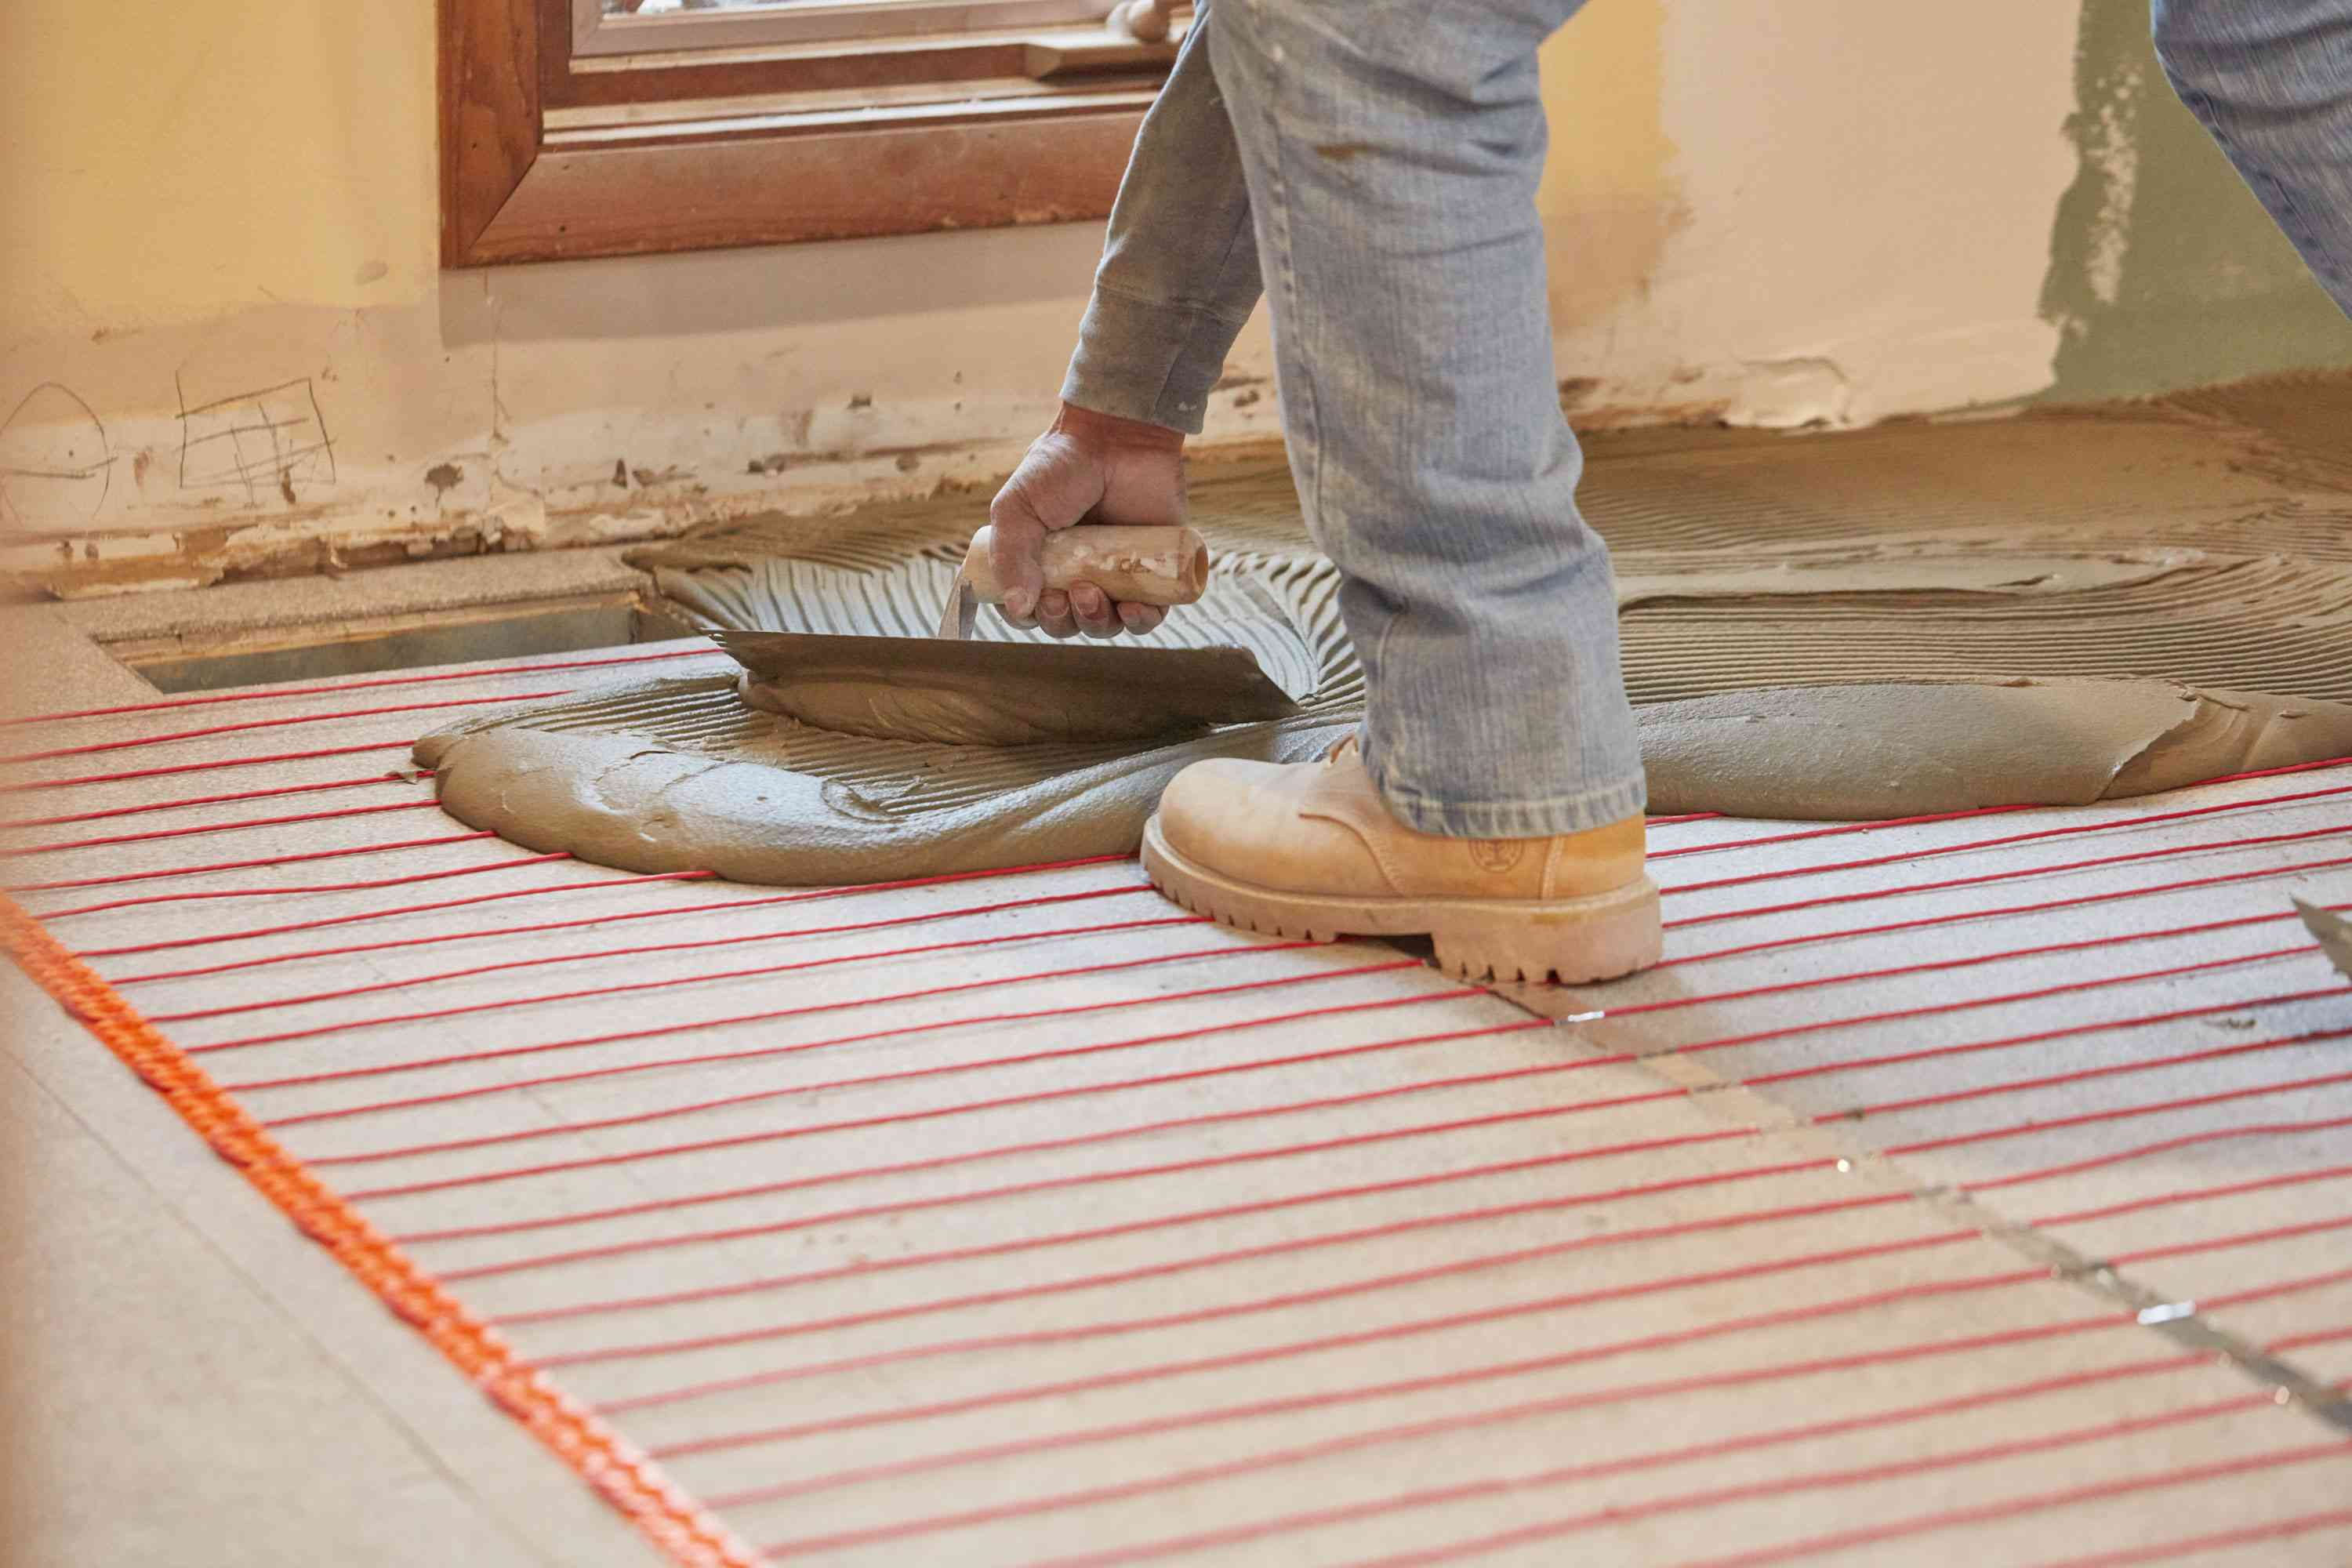 Underfloor heating system with orange wires being covered with tile mortar